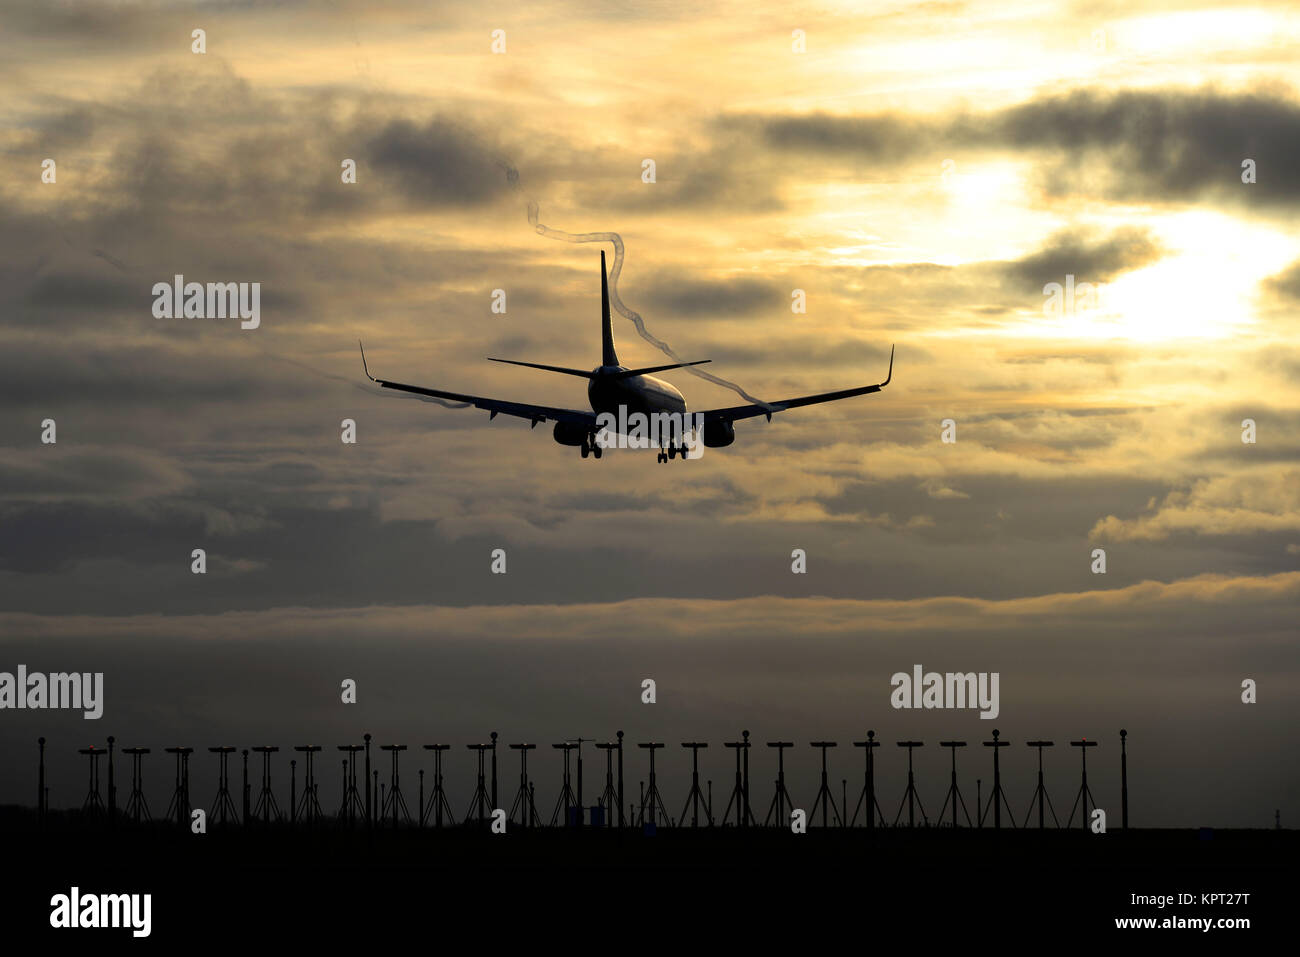 Ryanair Boeing 737 airliner jet plane landing at London Stansted Airport at sunset. Dusk. Evening. Passing over - Stock Image